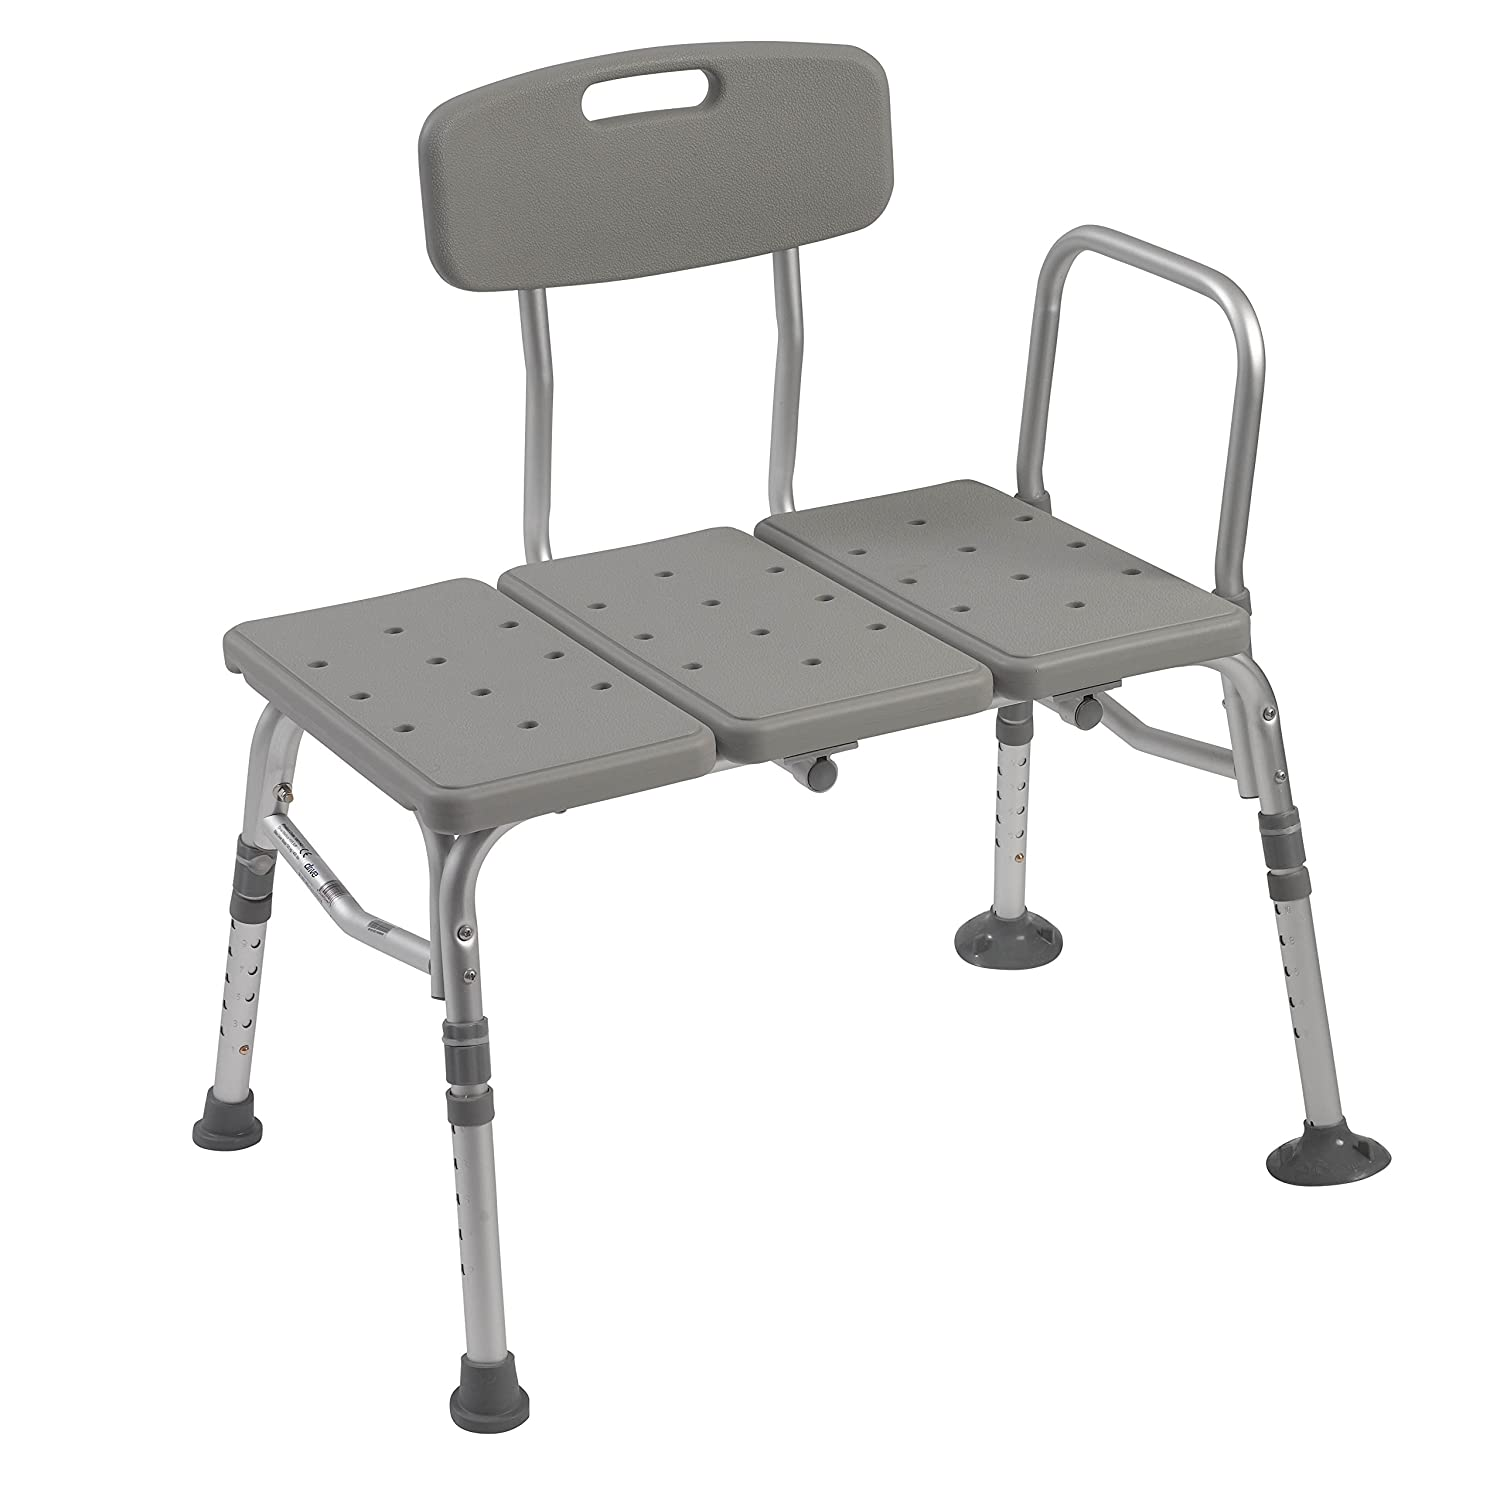 Amazon Plastic Tub Transfer Bench with Adjustable Backrest